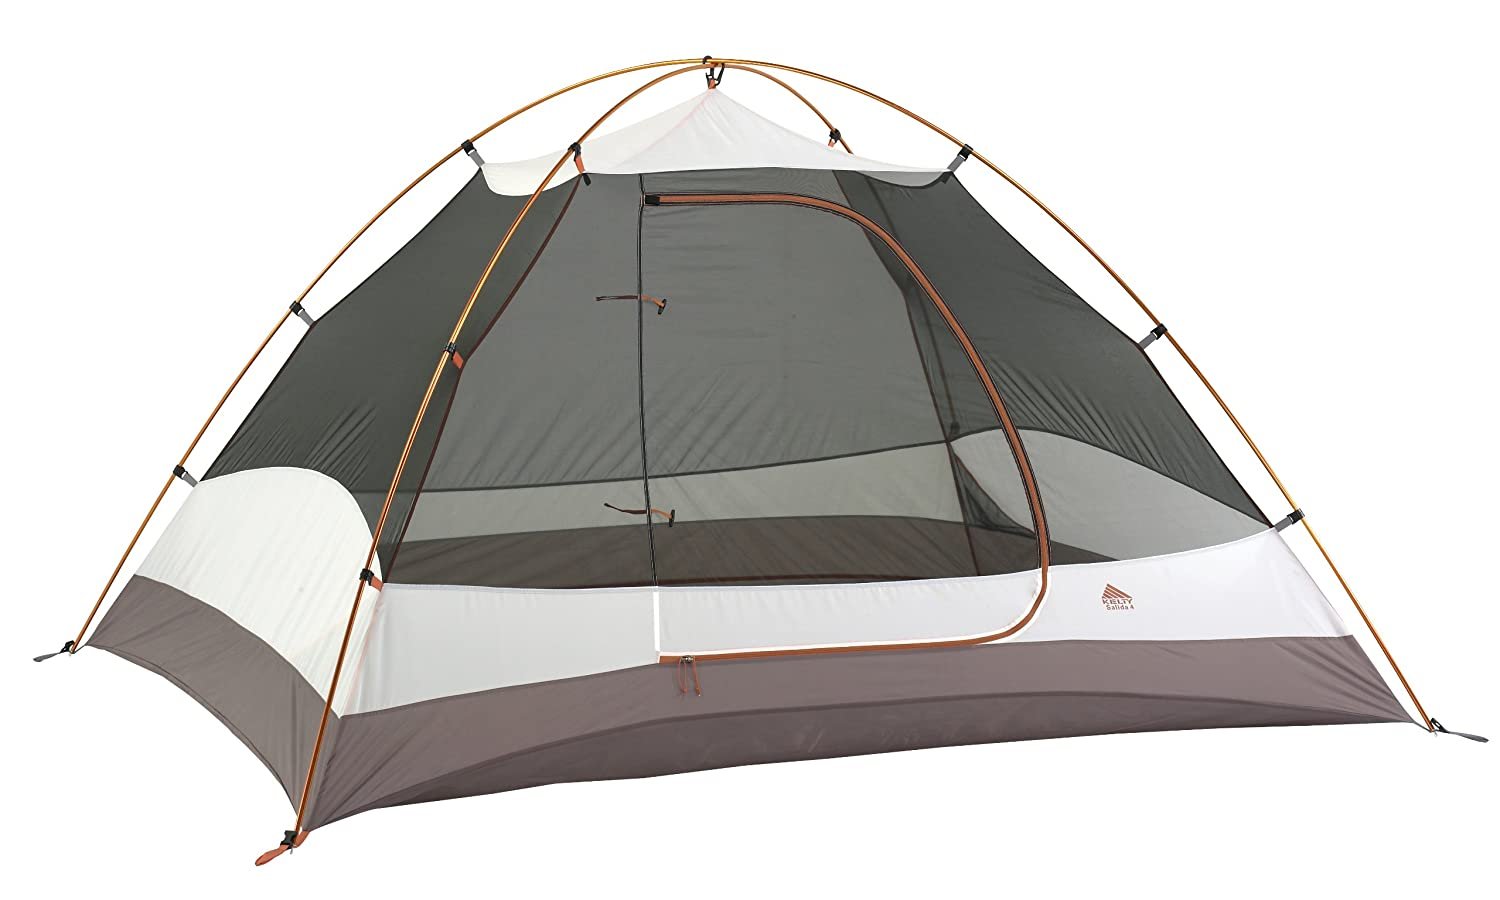 Amazon.com  Kelty Salida 4 Backpacking 4 Person Tent  Sports u0026 Outdoors  sc 1 st  Amazon.com : hillary 4 person tent - memphite.com